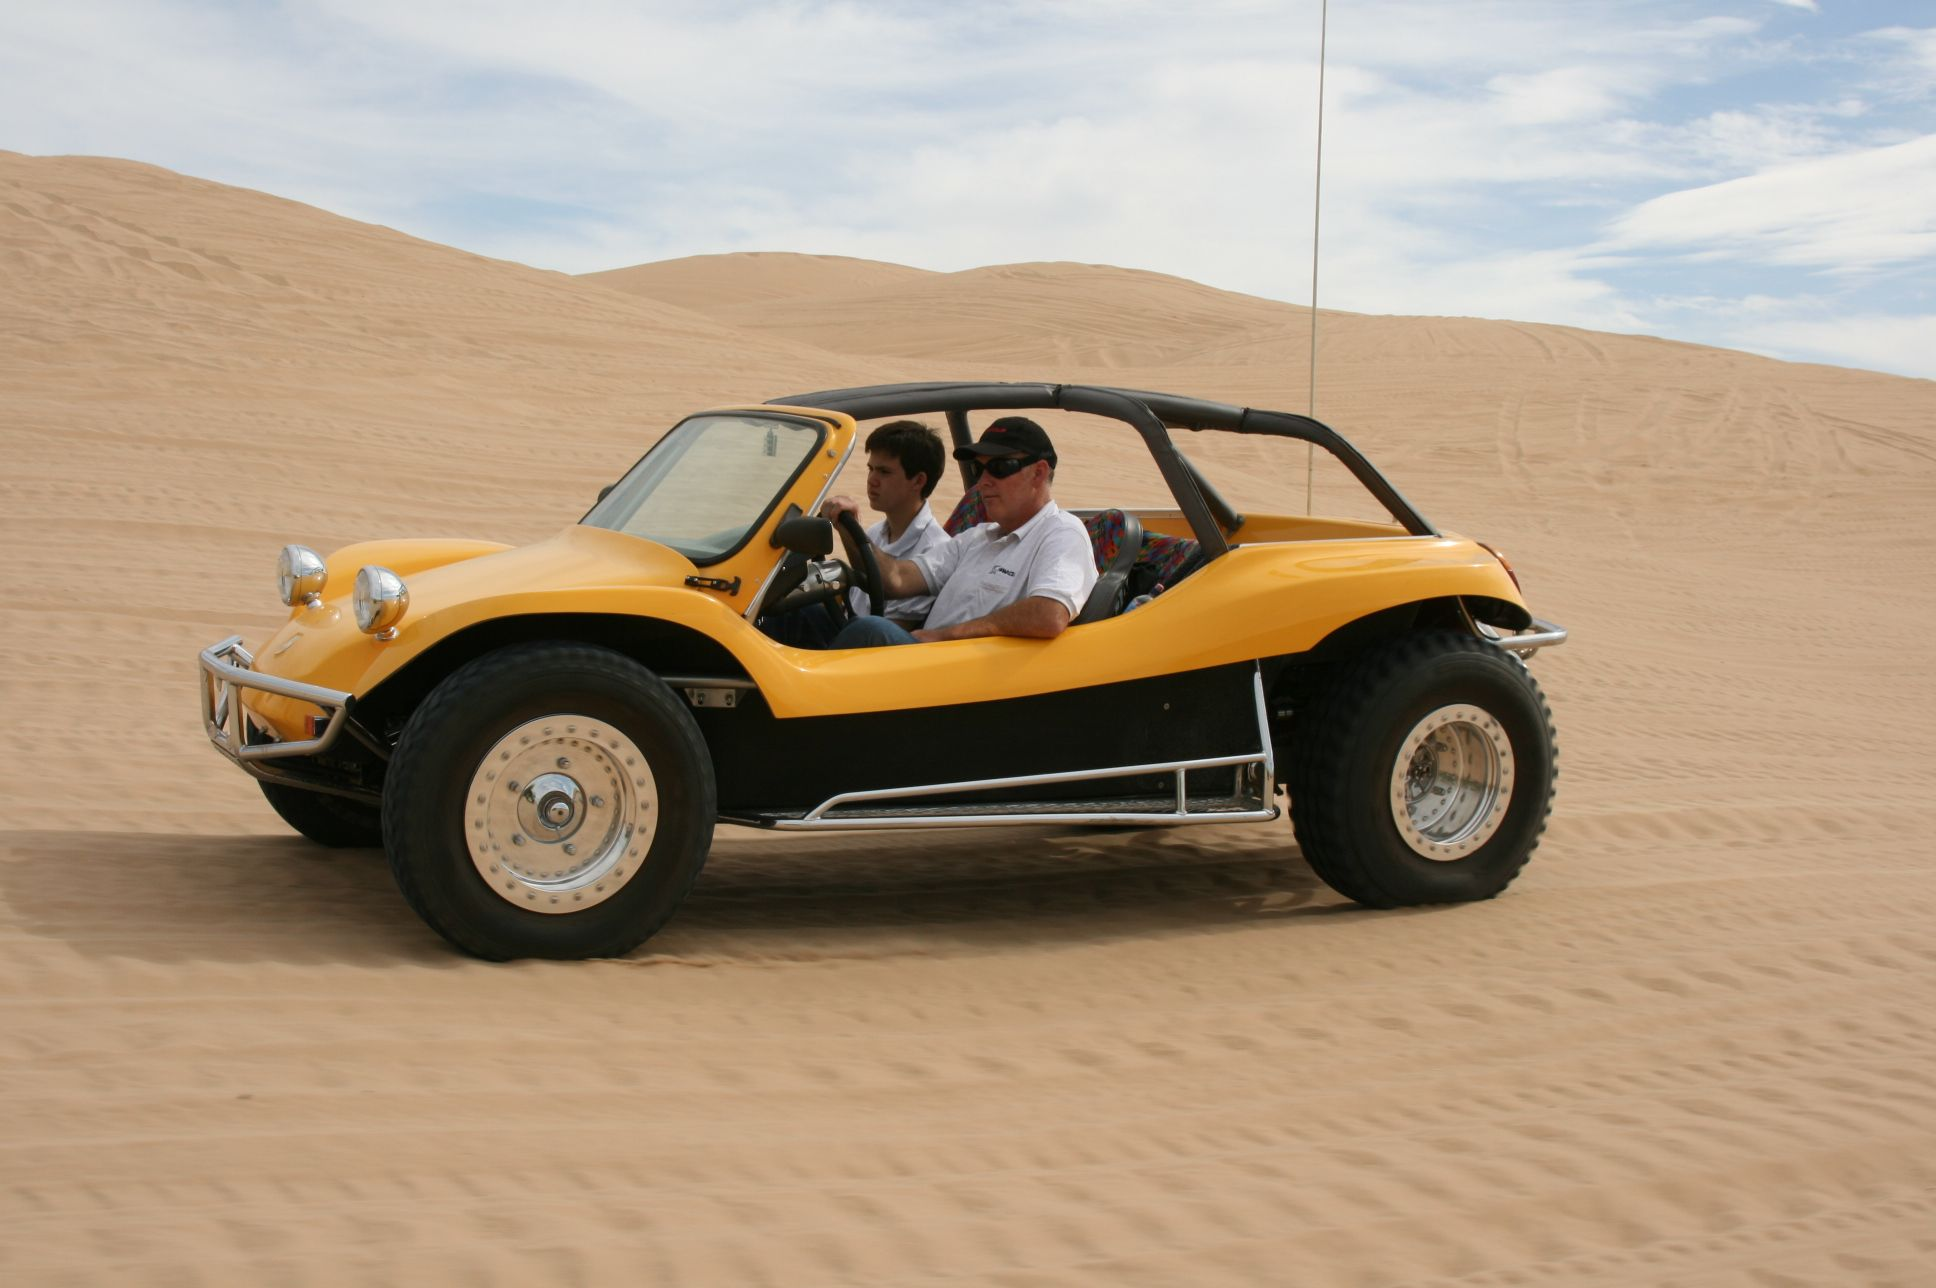 meyers manx 2 2 manxter dune buggy road trip pinterest manx auto mini and cars. Black Bedroom Furniture Sets. Home Design Ideas